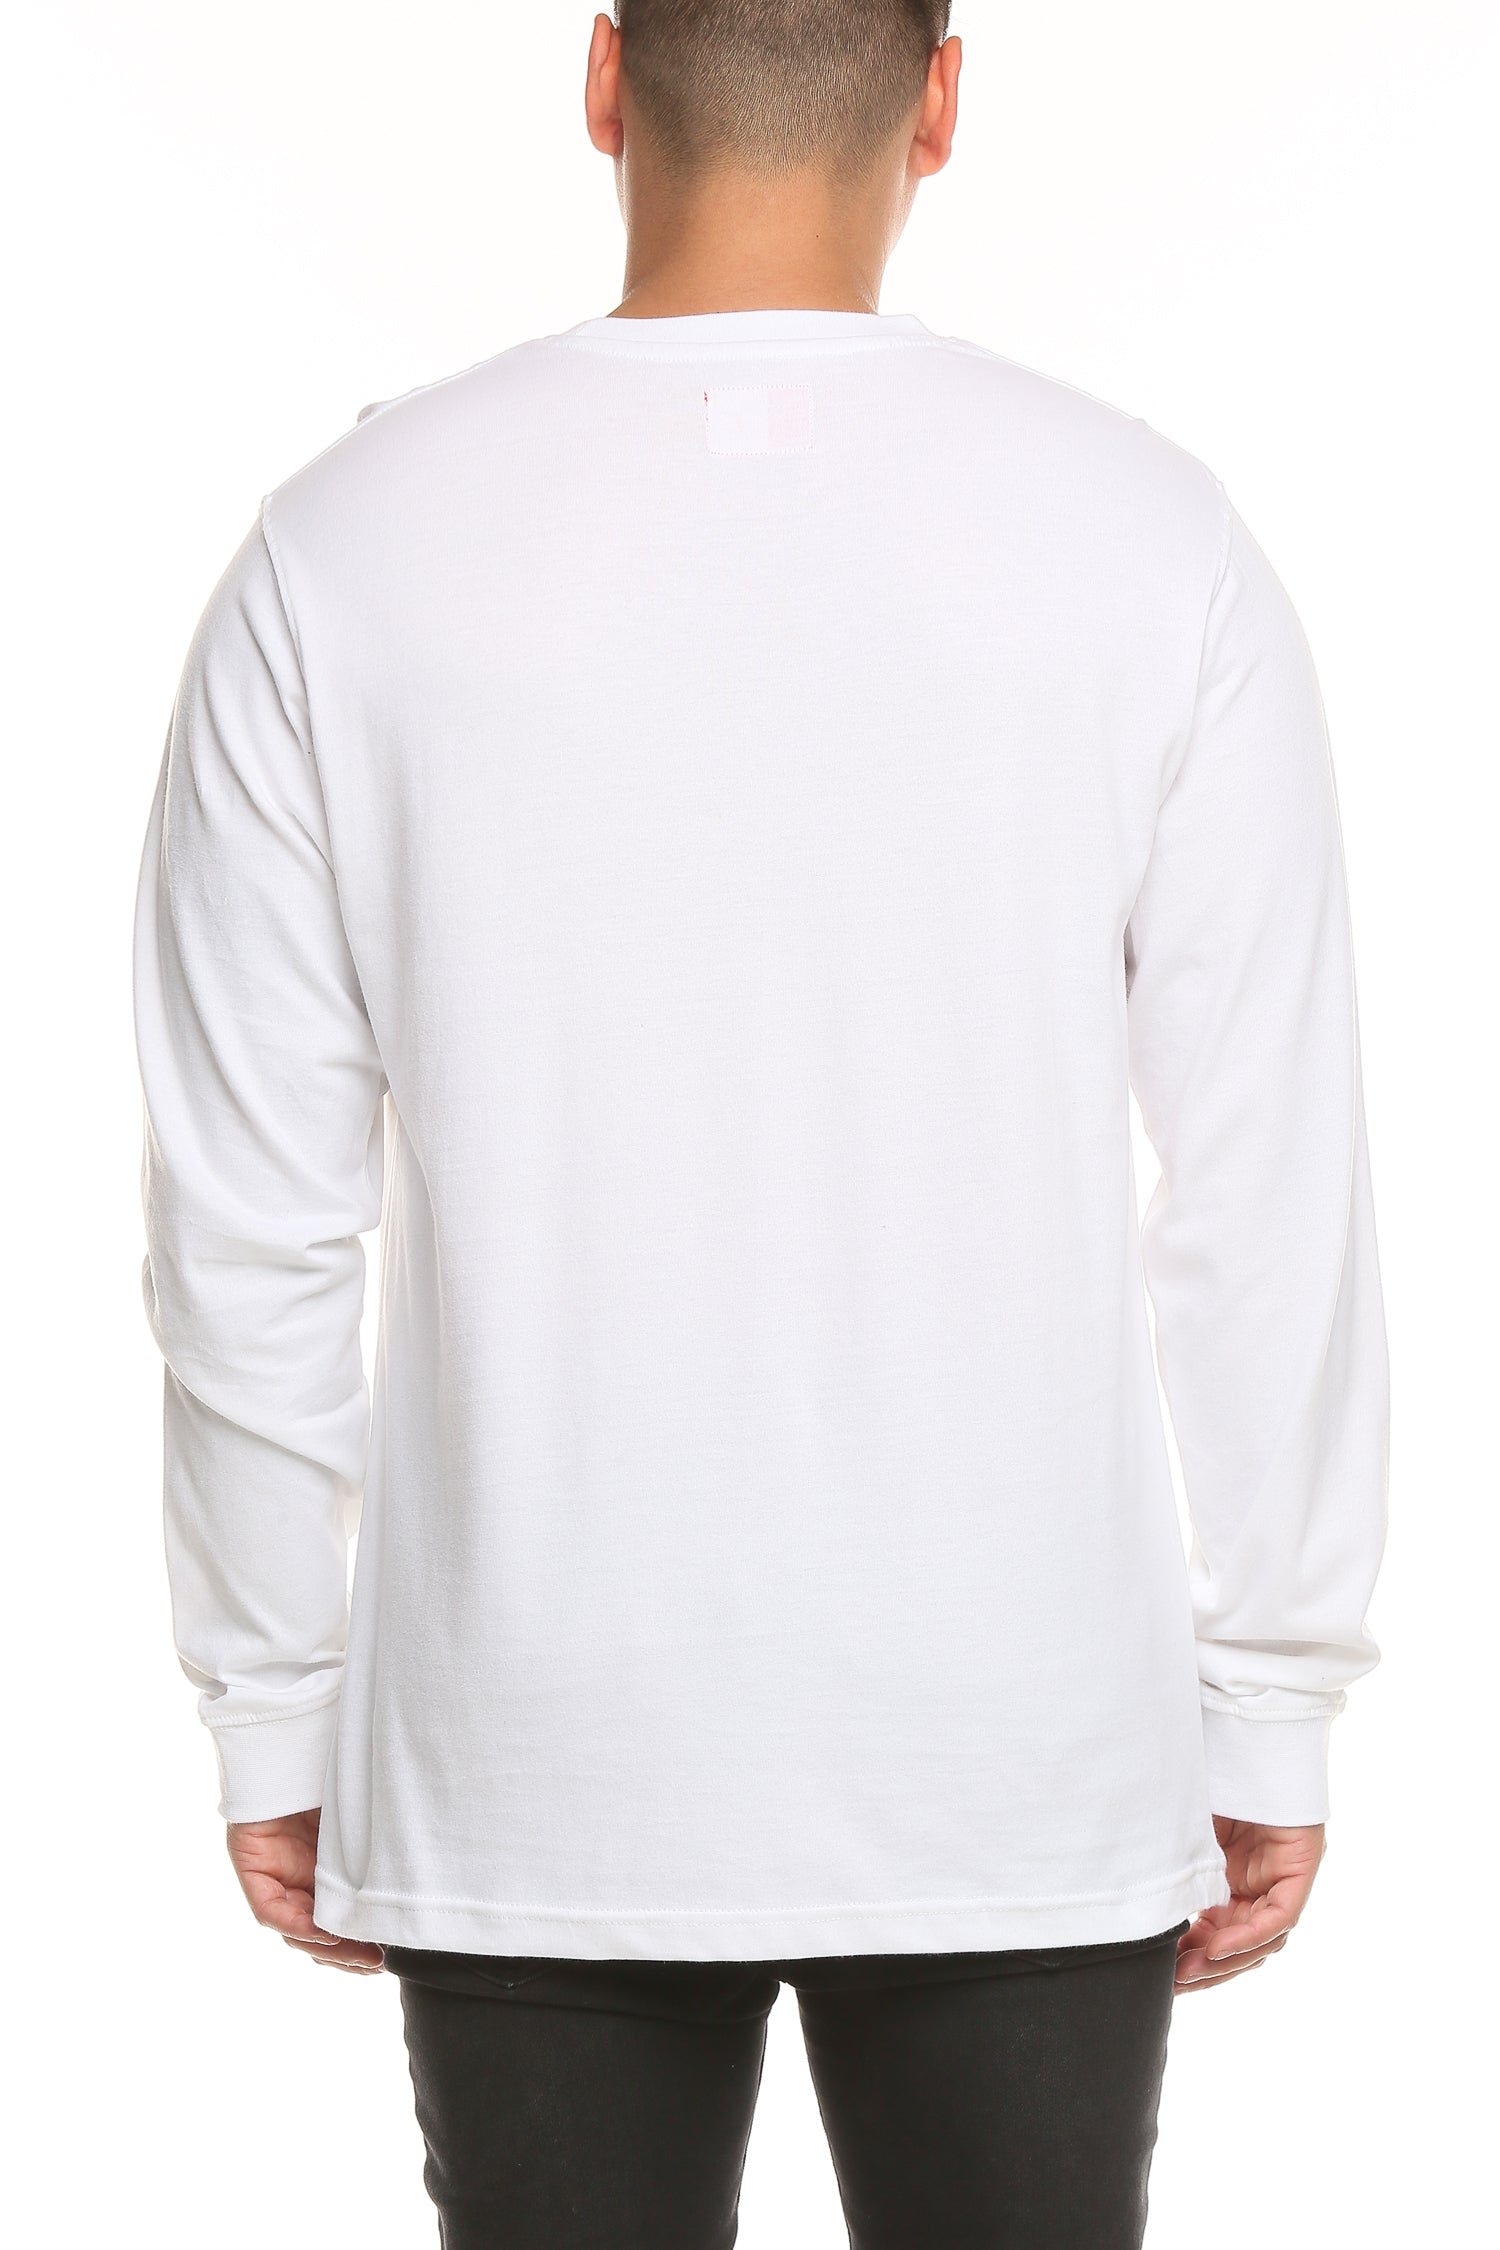 TEST LS TEE - White